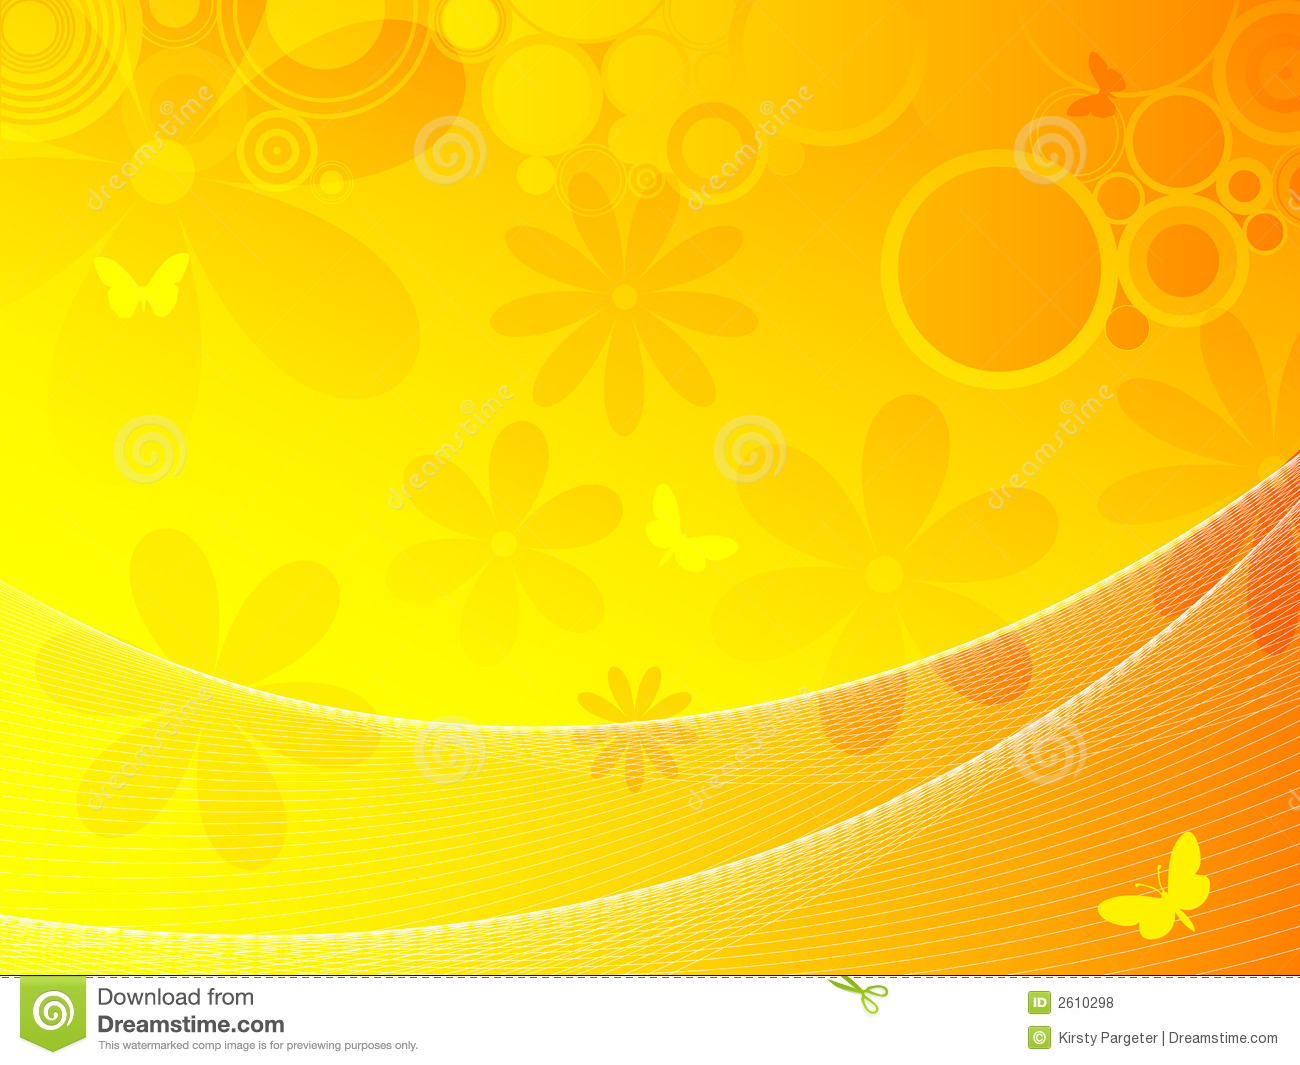 Happy Thanksgiving 3d Wallpaper Summer Background Royalty Free Stock Photos Image 2610298